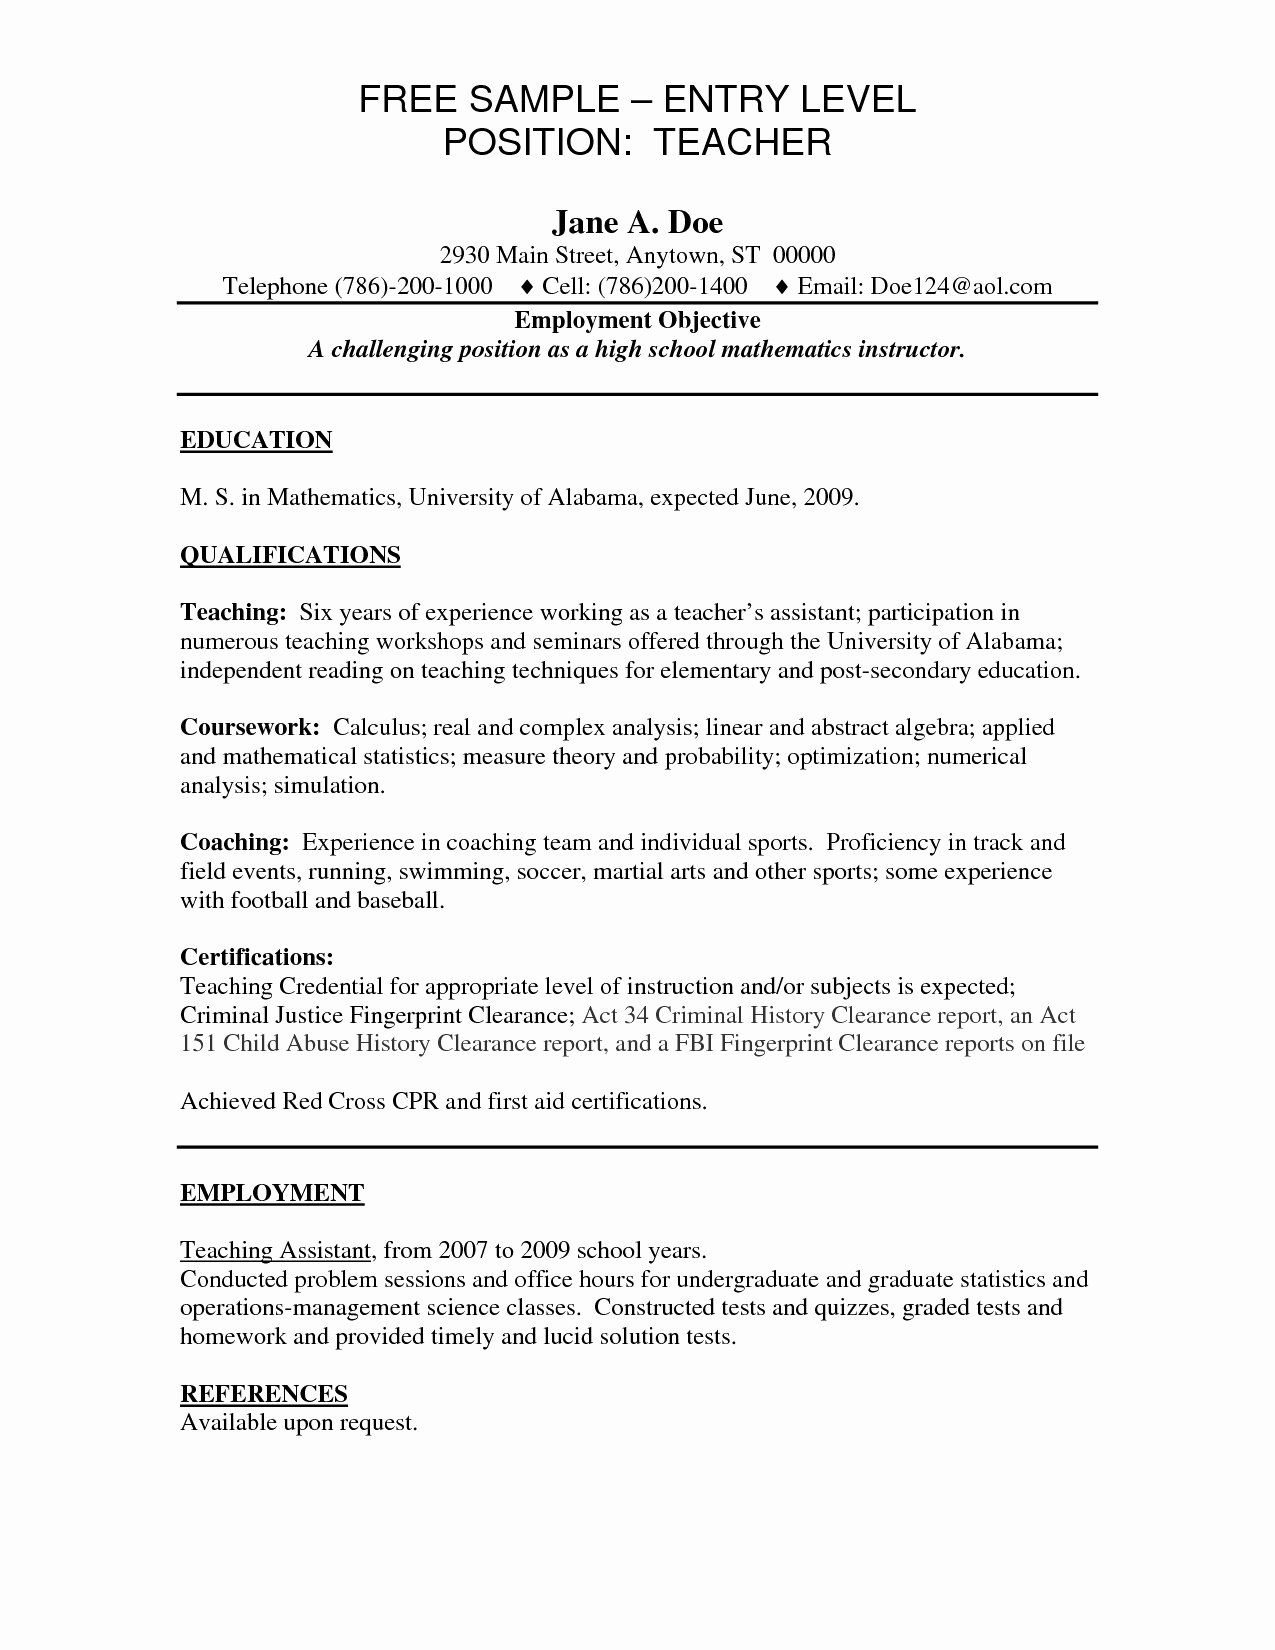 Entry Level Product Manager Resume Inspirational 12 13 Sample Career Objective for Teachers Resume